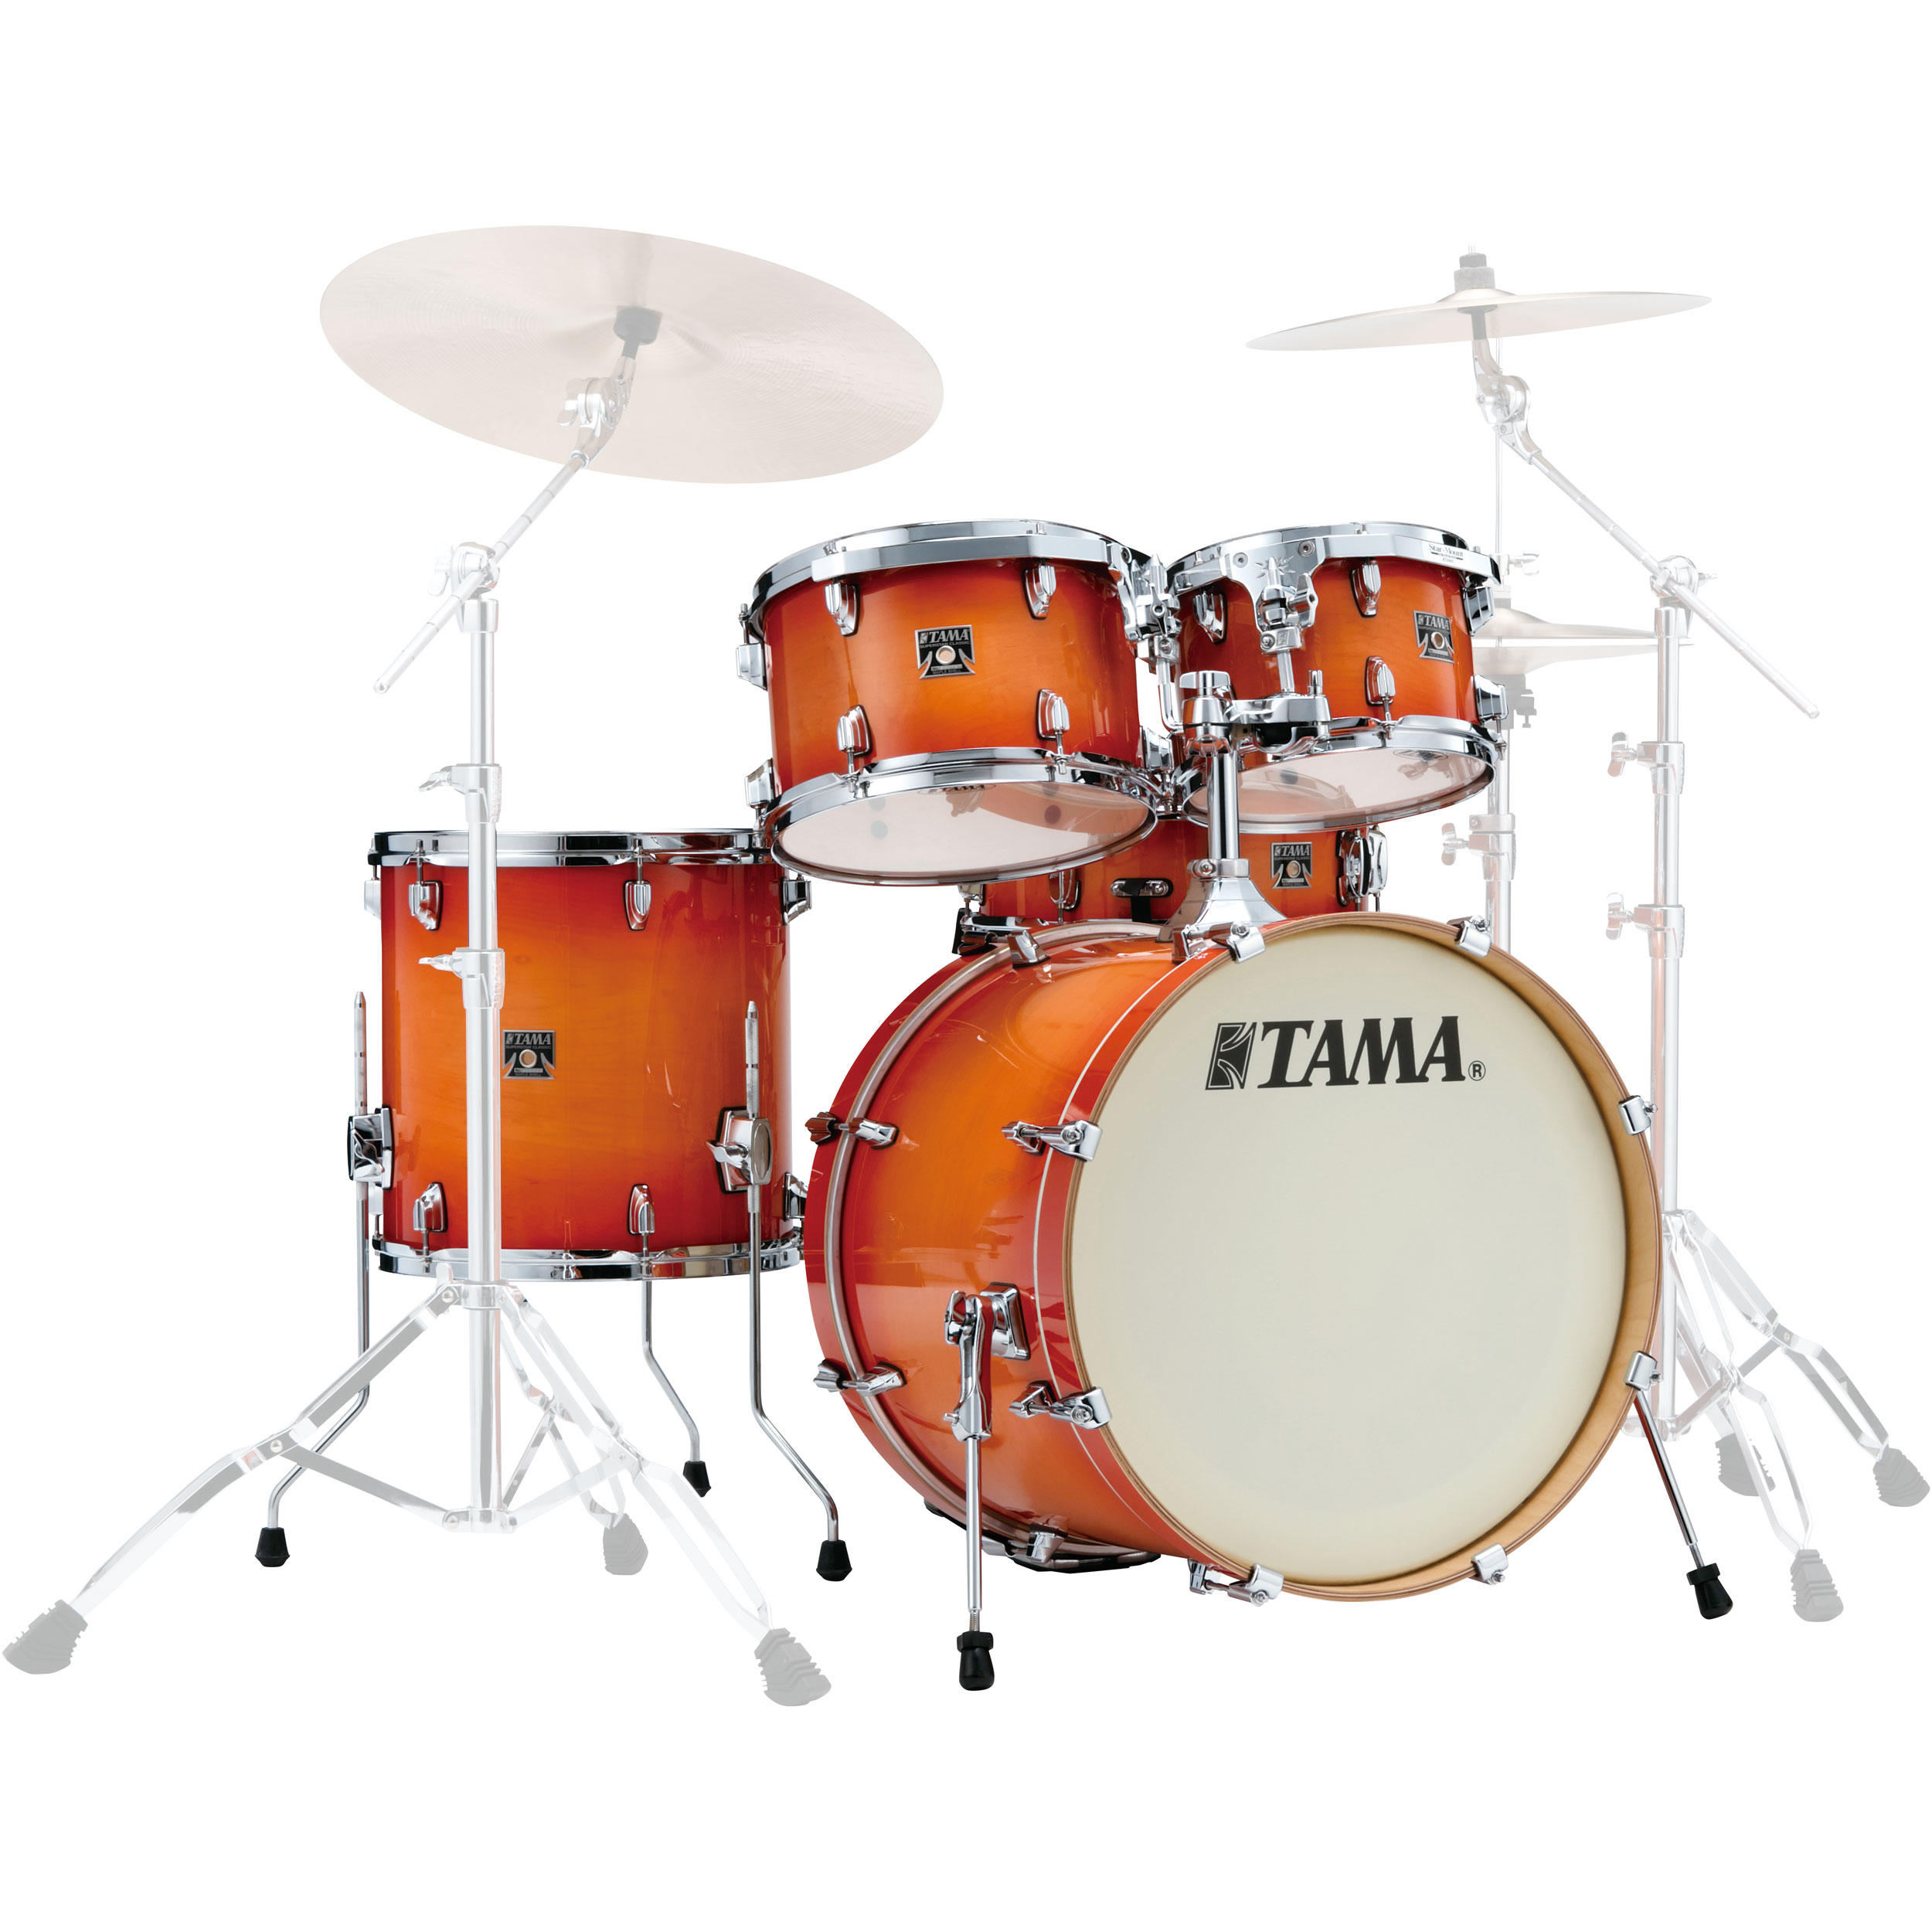 tama superstar classic 5 piece drum set 20 bass 10 12 14 toms 14 snare in lacquer finish. Black Bedroom Furniture Sets. Home Design Ideas